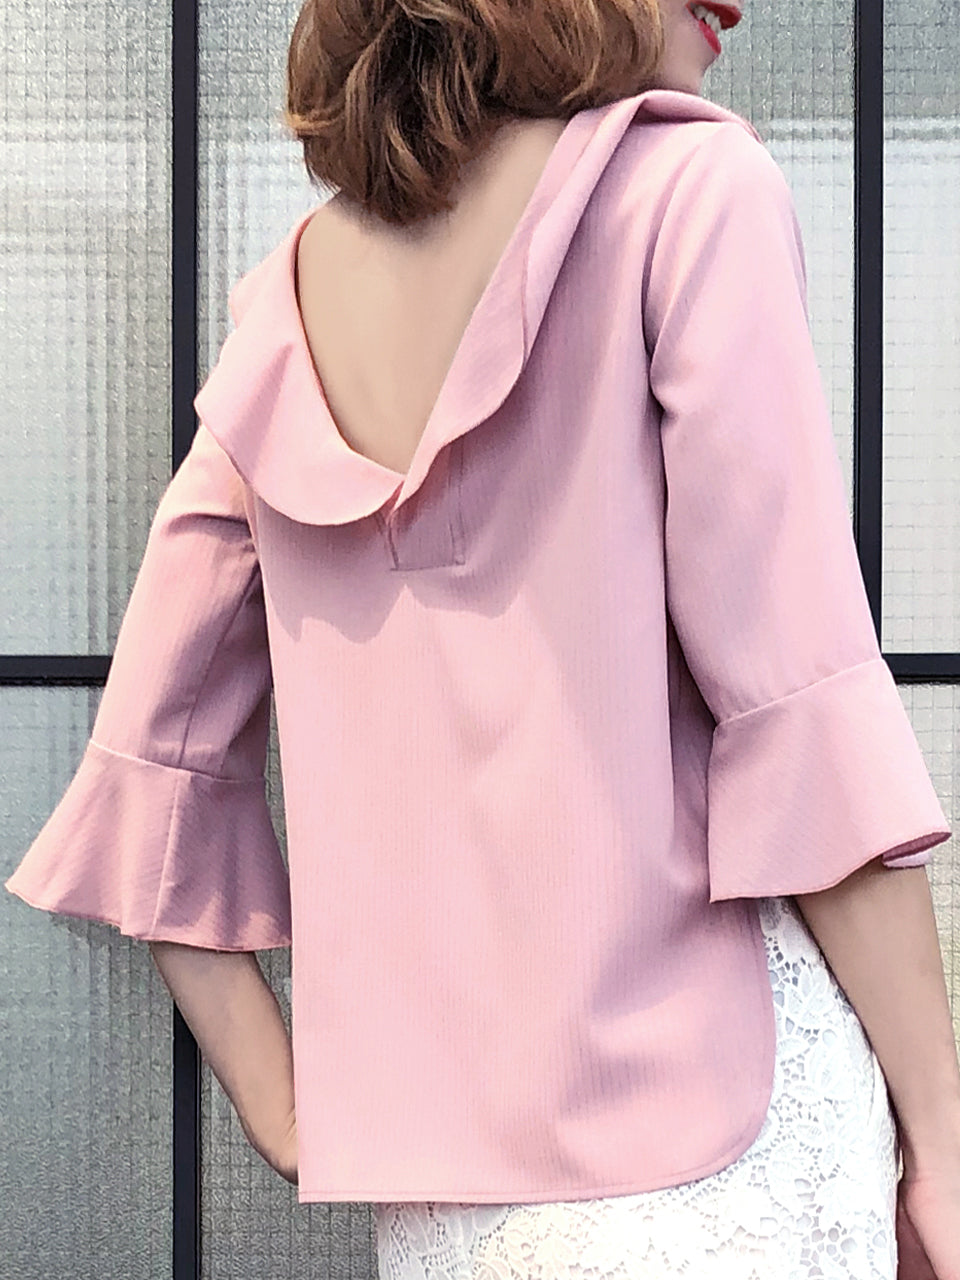 20439f39a61a89 Subtle Striped Pattern Dirty Pink Ruffle Collar Blouse Anniversary Sale! Subtle  Striped Pattern Dirty Pink Ruffle Collar Blouse ...